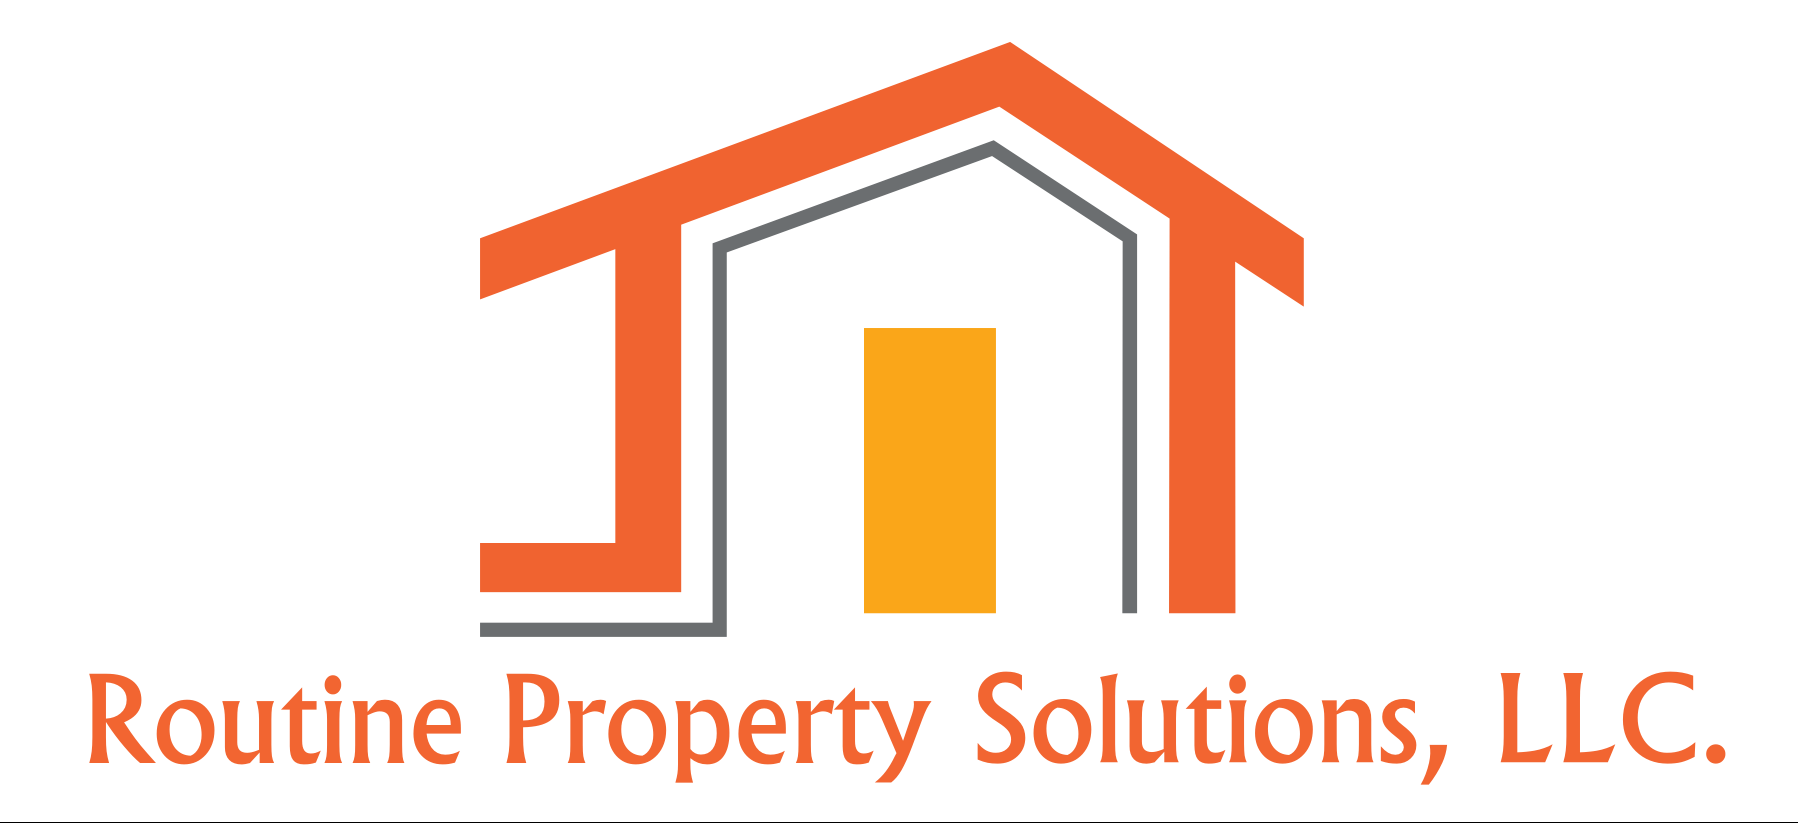 Routine Property Solutions